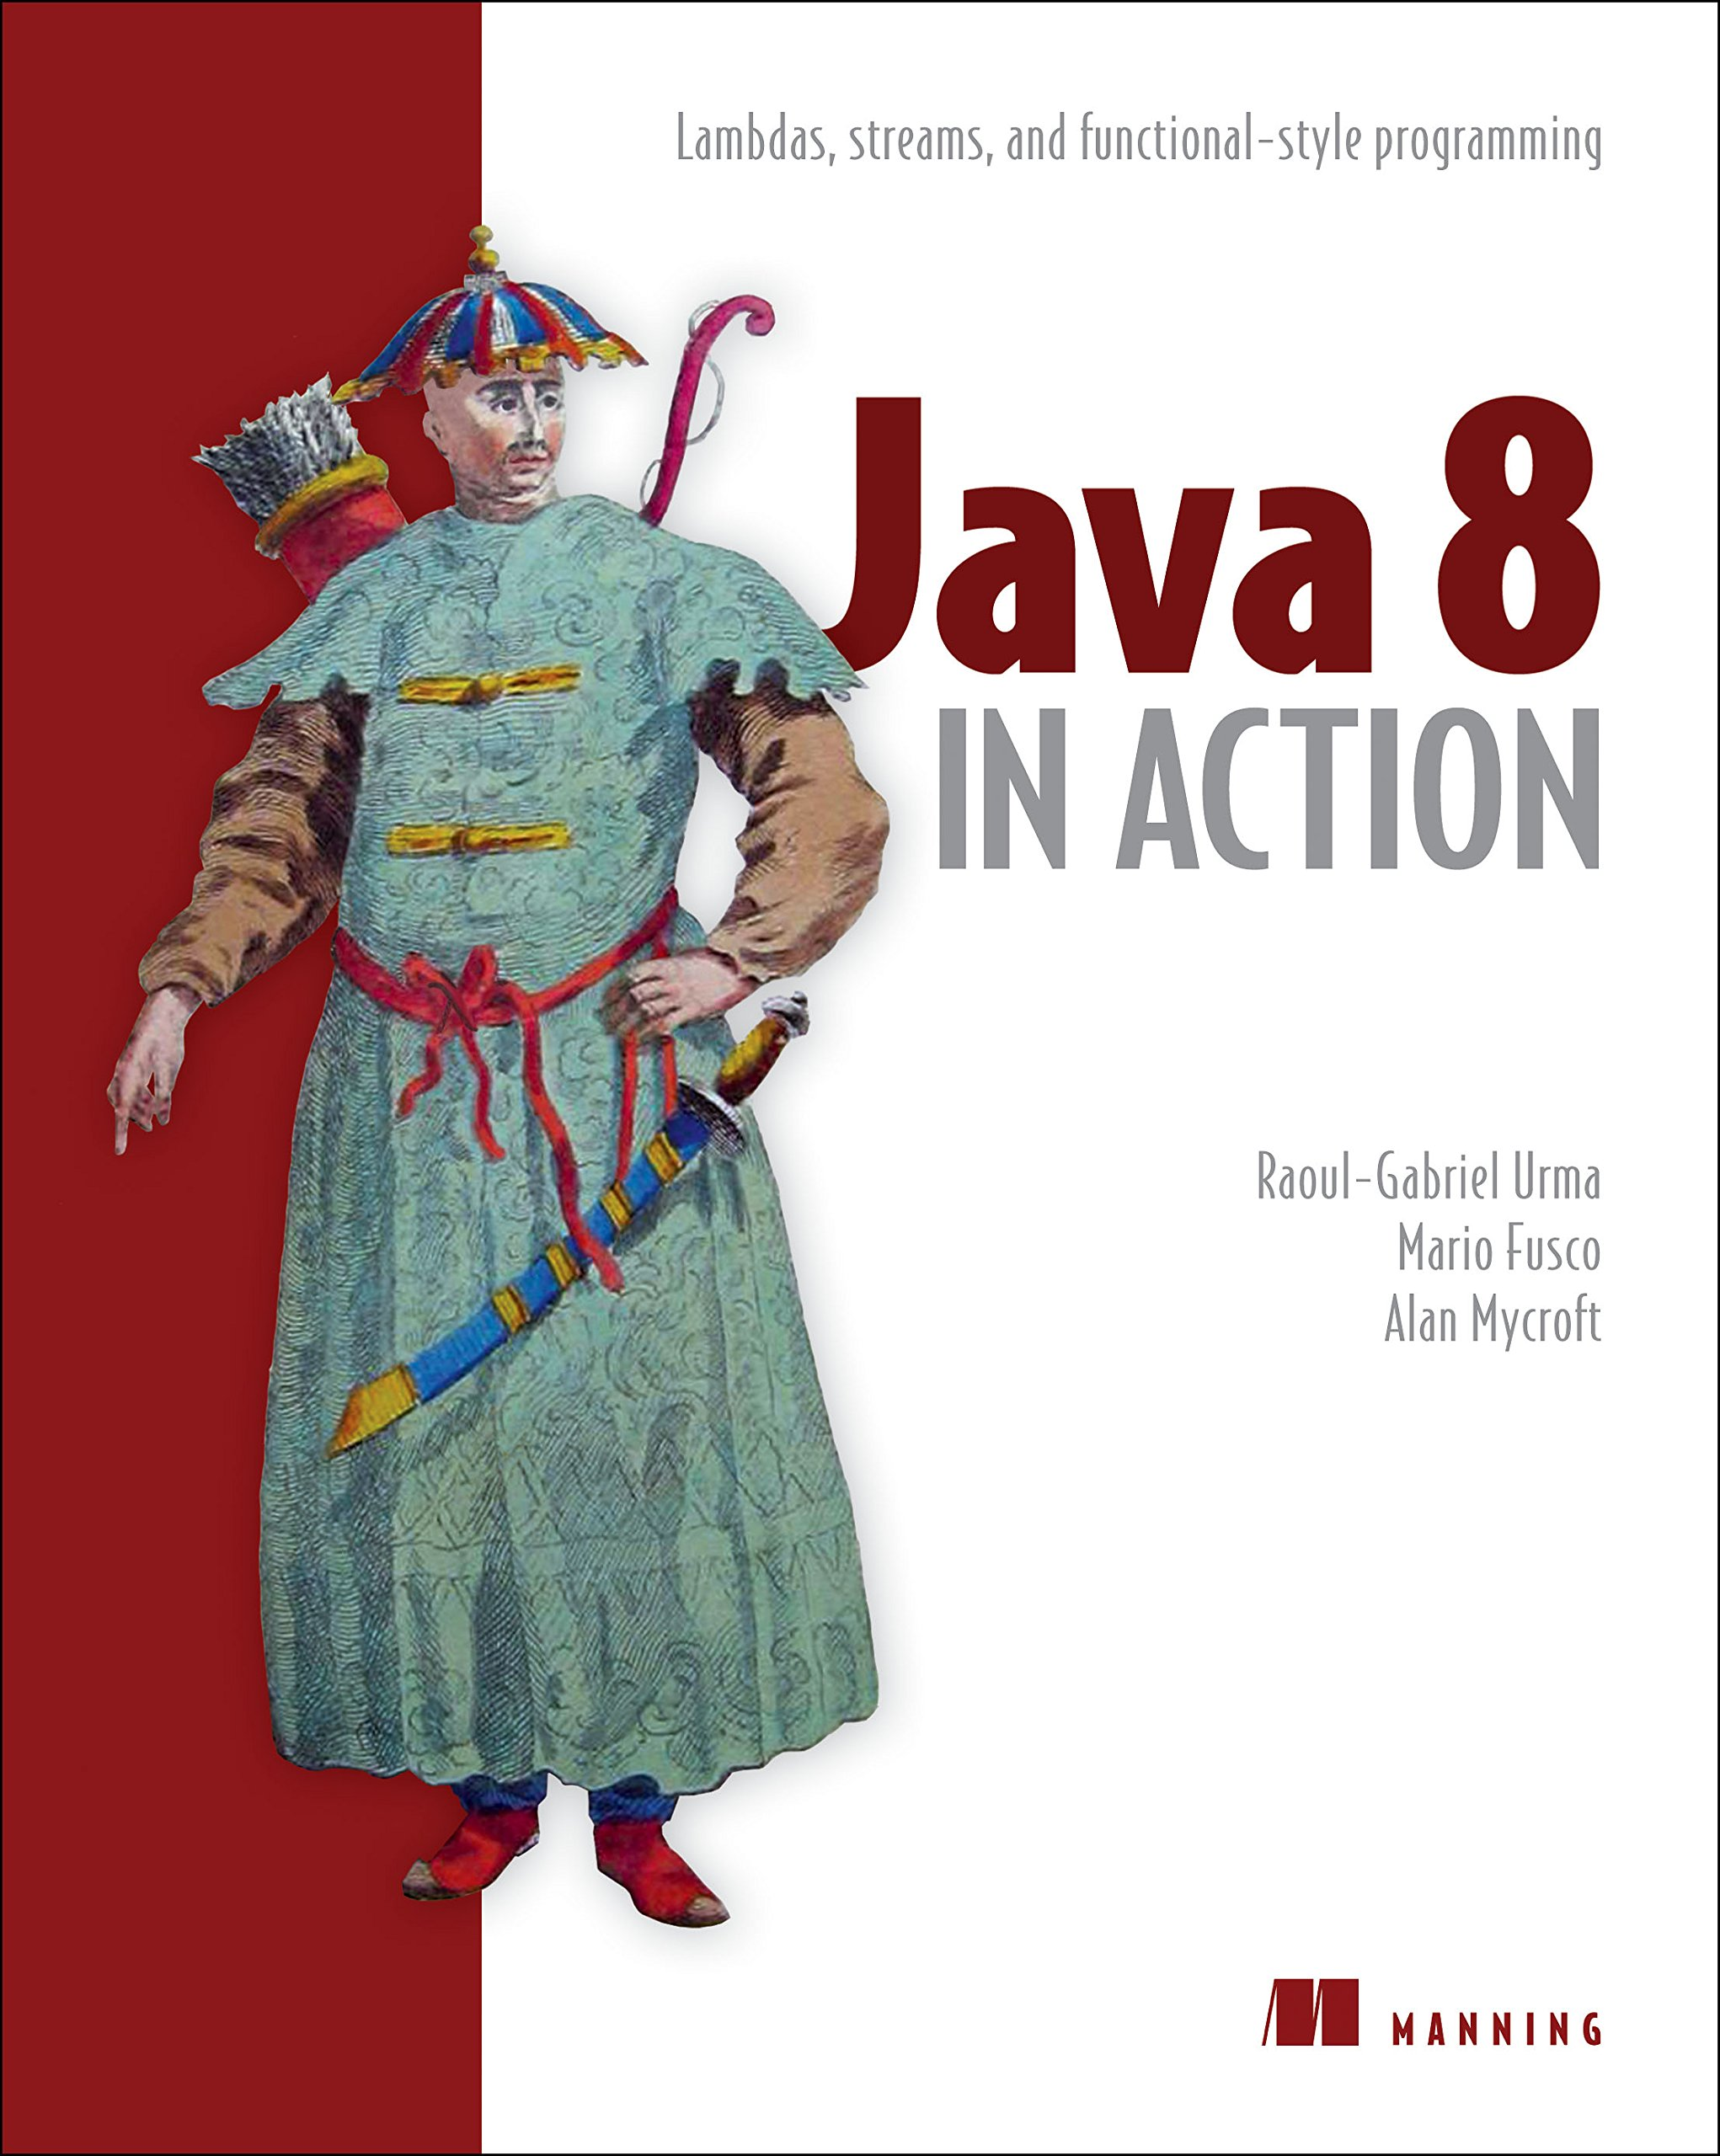 Java 8 in Action: Lambdas, Streams, and functional style programming